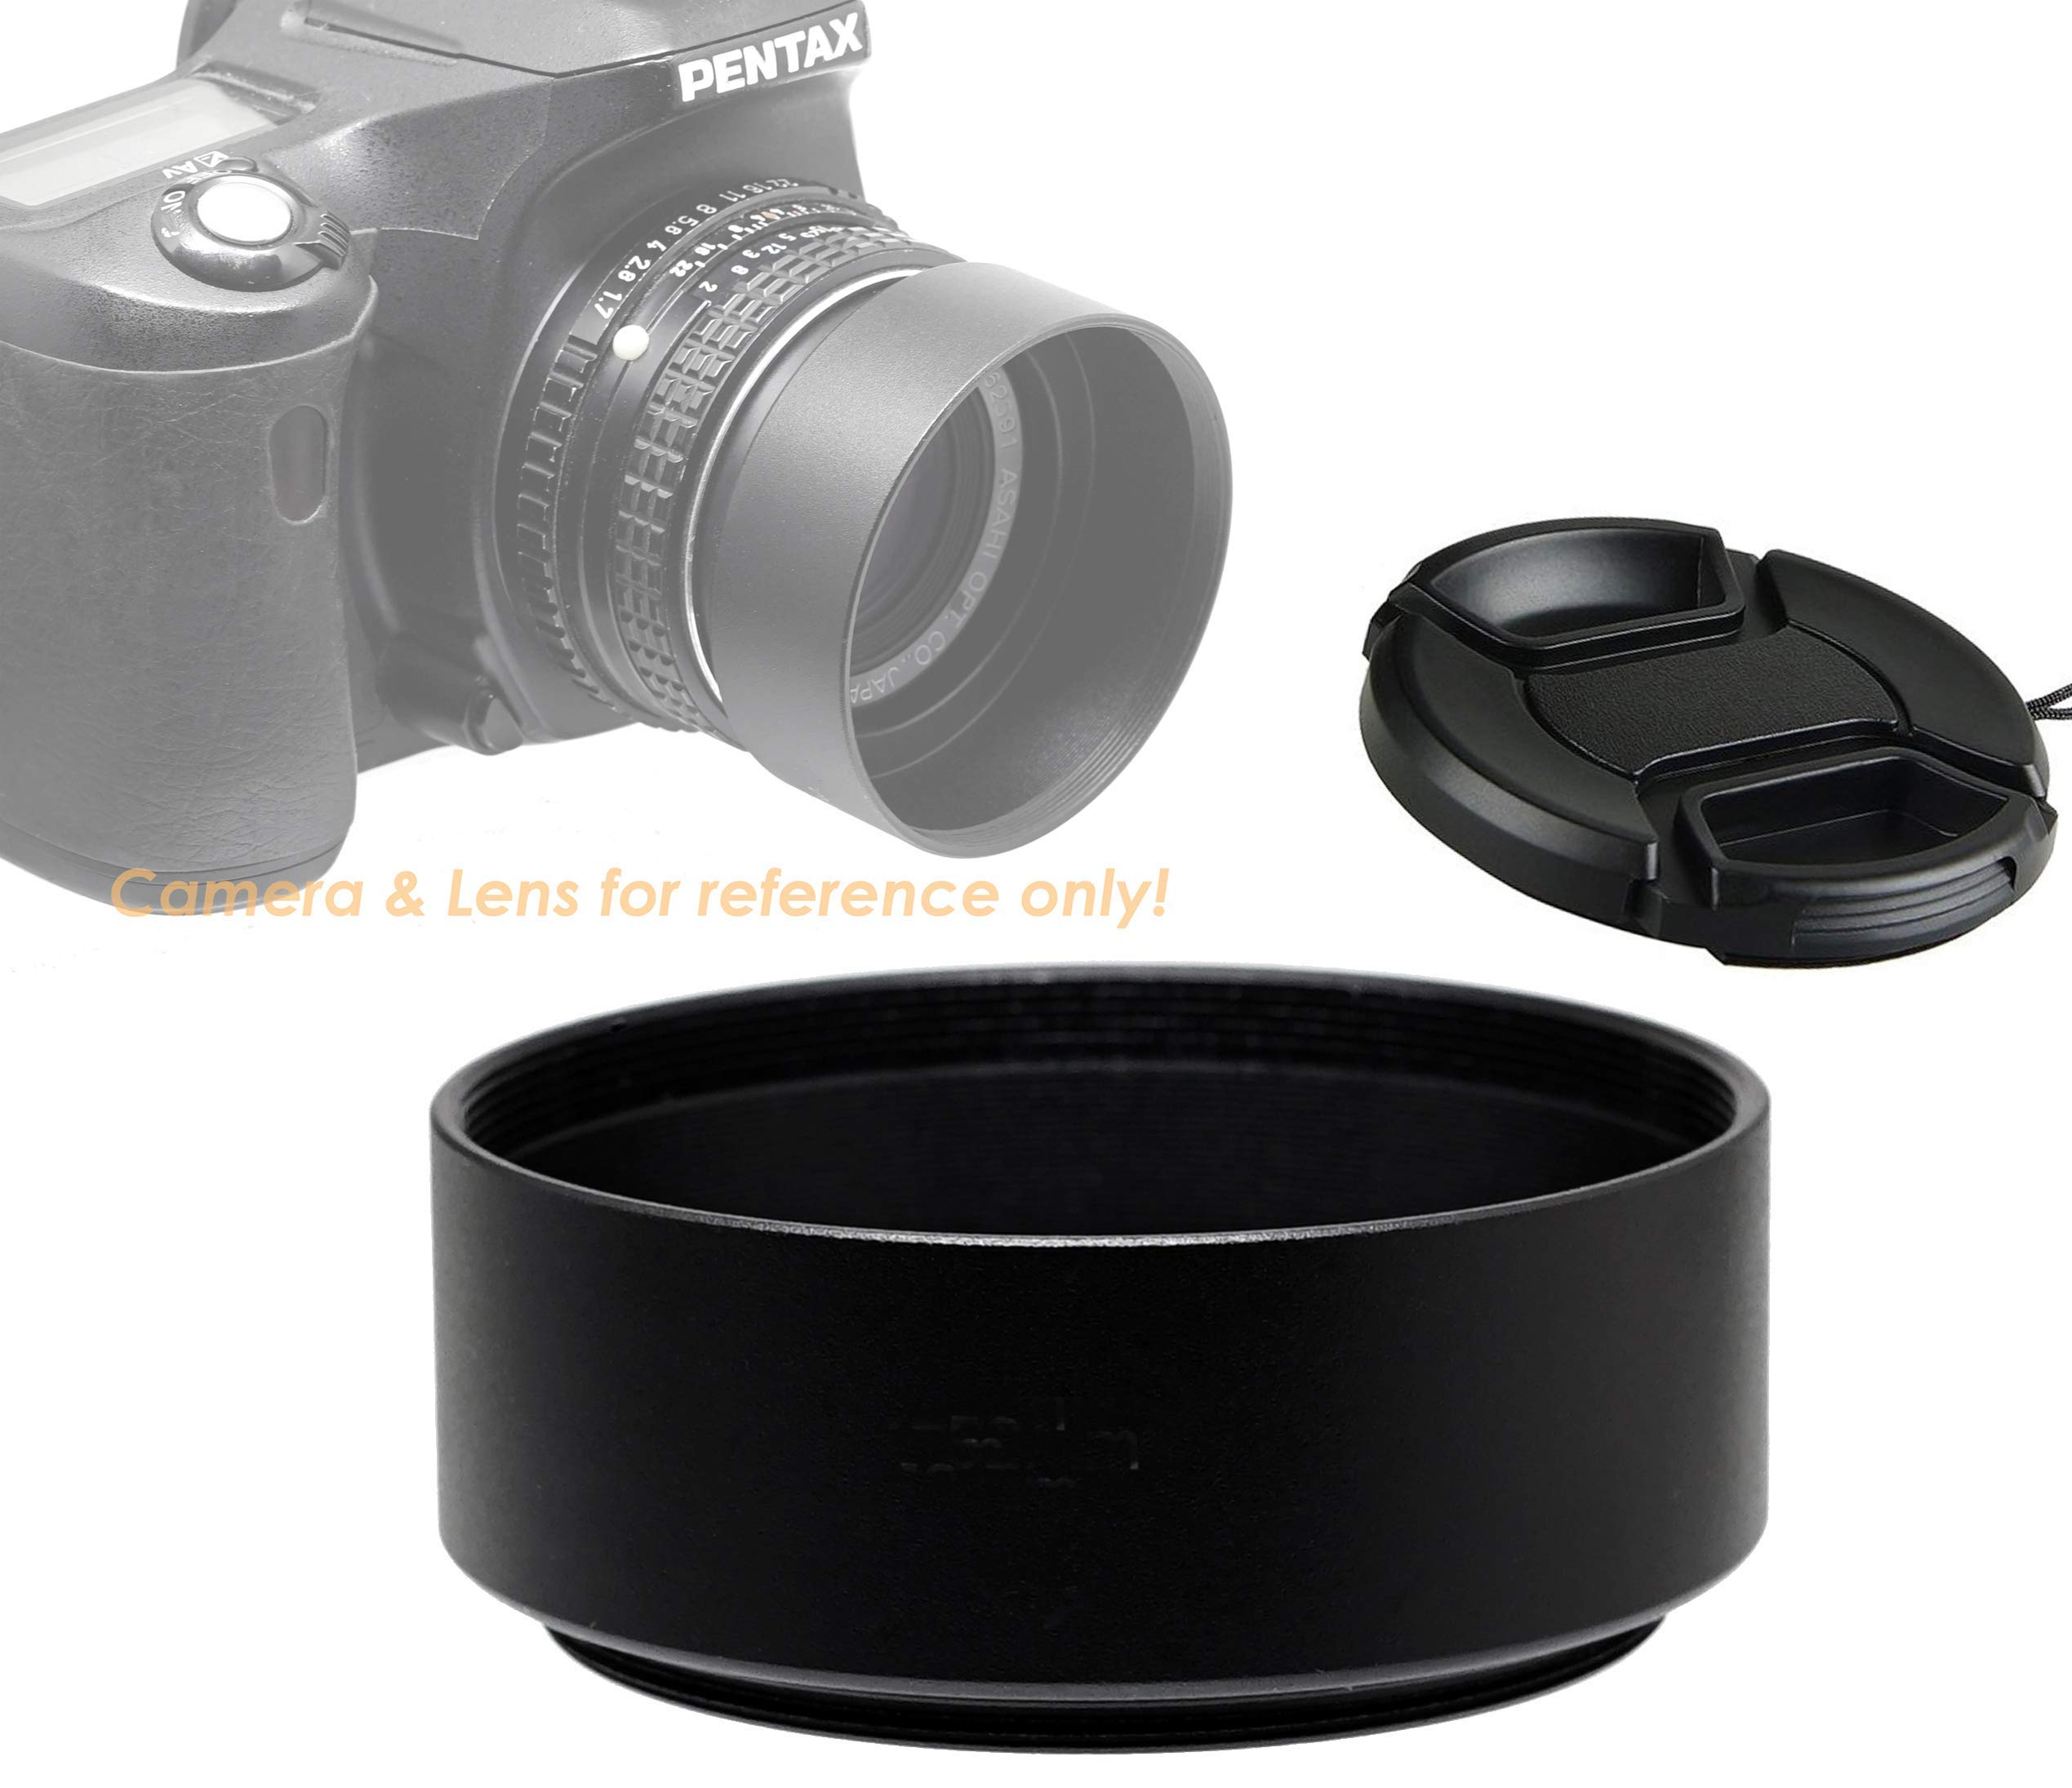 Cleaning Cloth 40.5mm Tele Metal Screw-in Lens Hood Sunshade with Centre Pinch Lens Cap for Canon Nikon Sony Pentax Olympus Fuji Sumsung Leica Camera